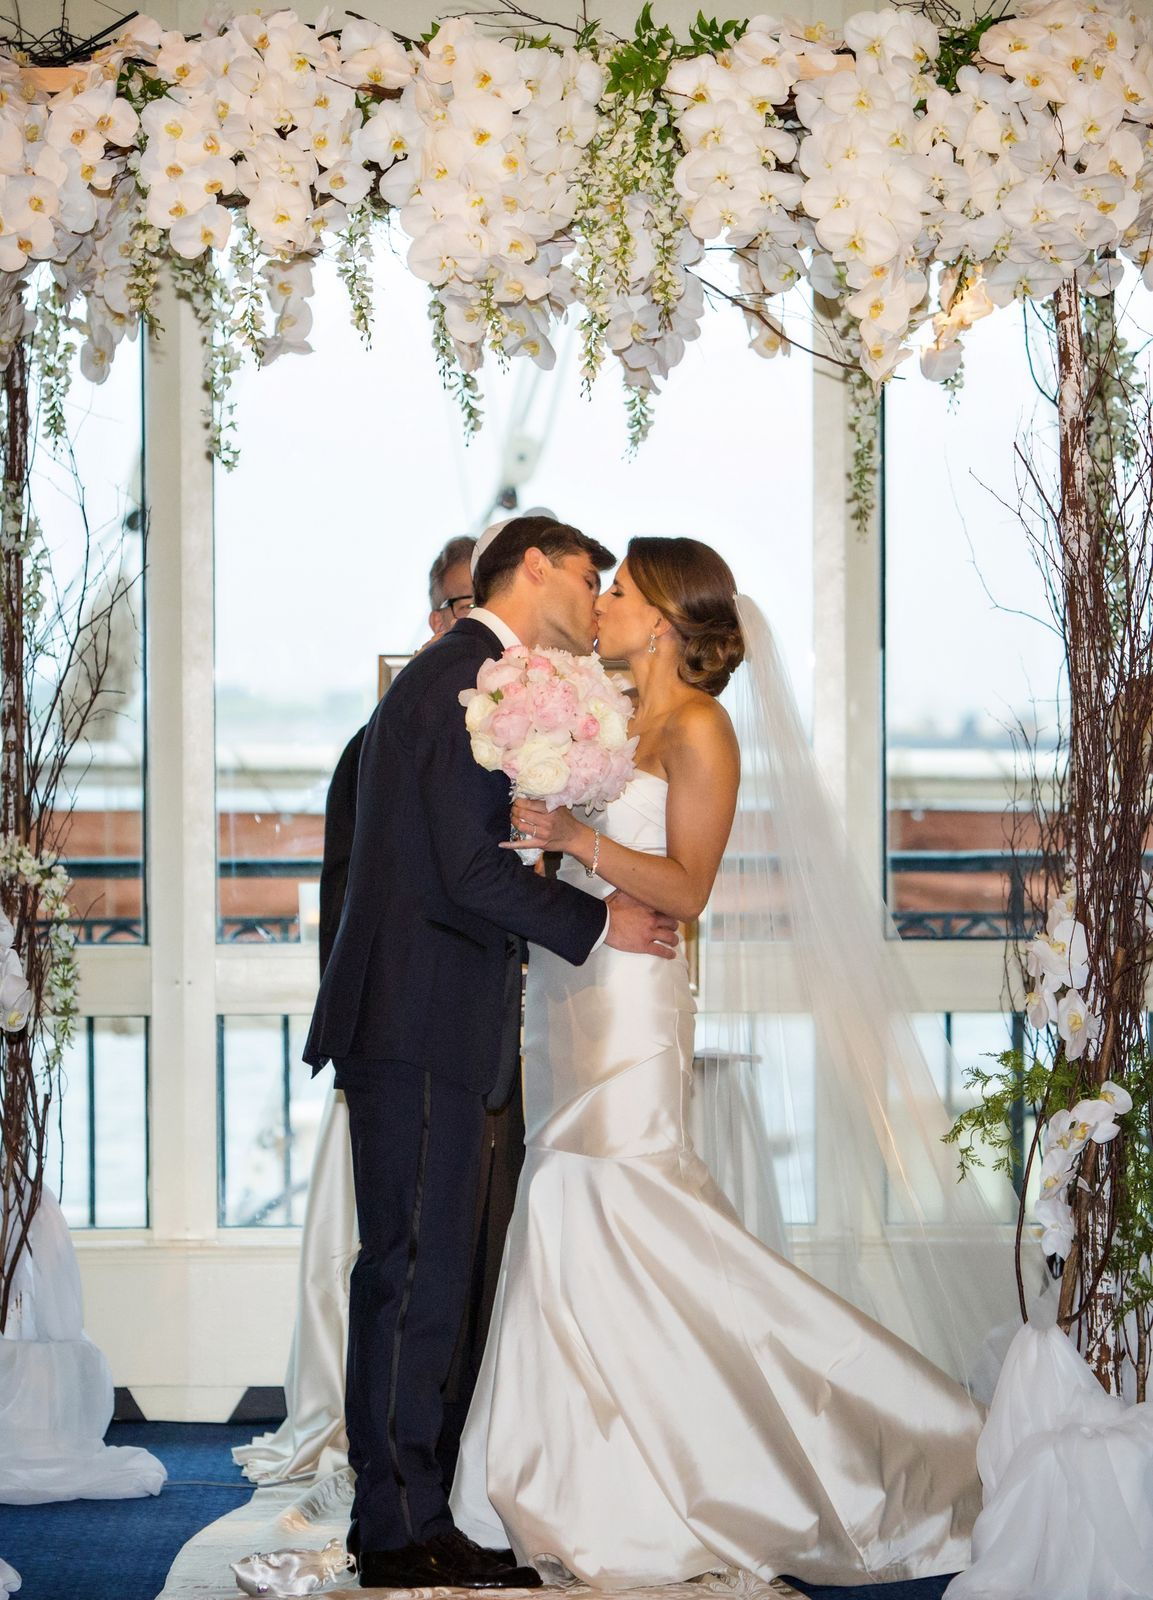 Newlyweds sharing their first kiss